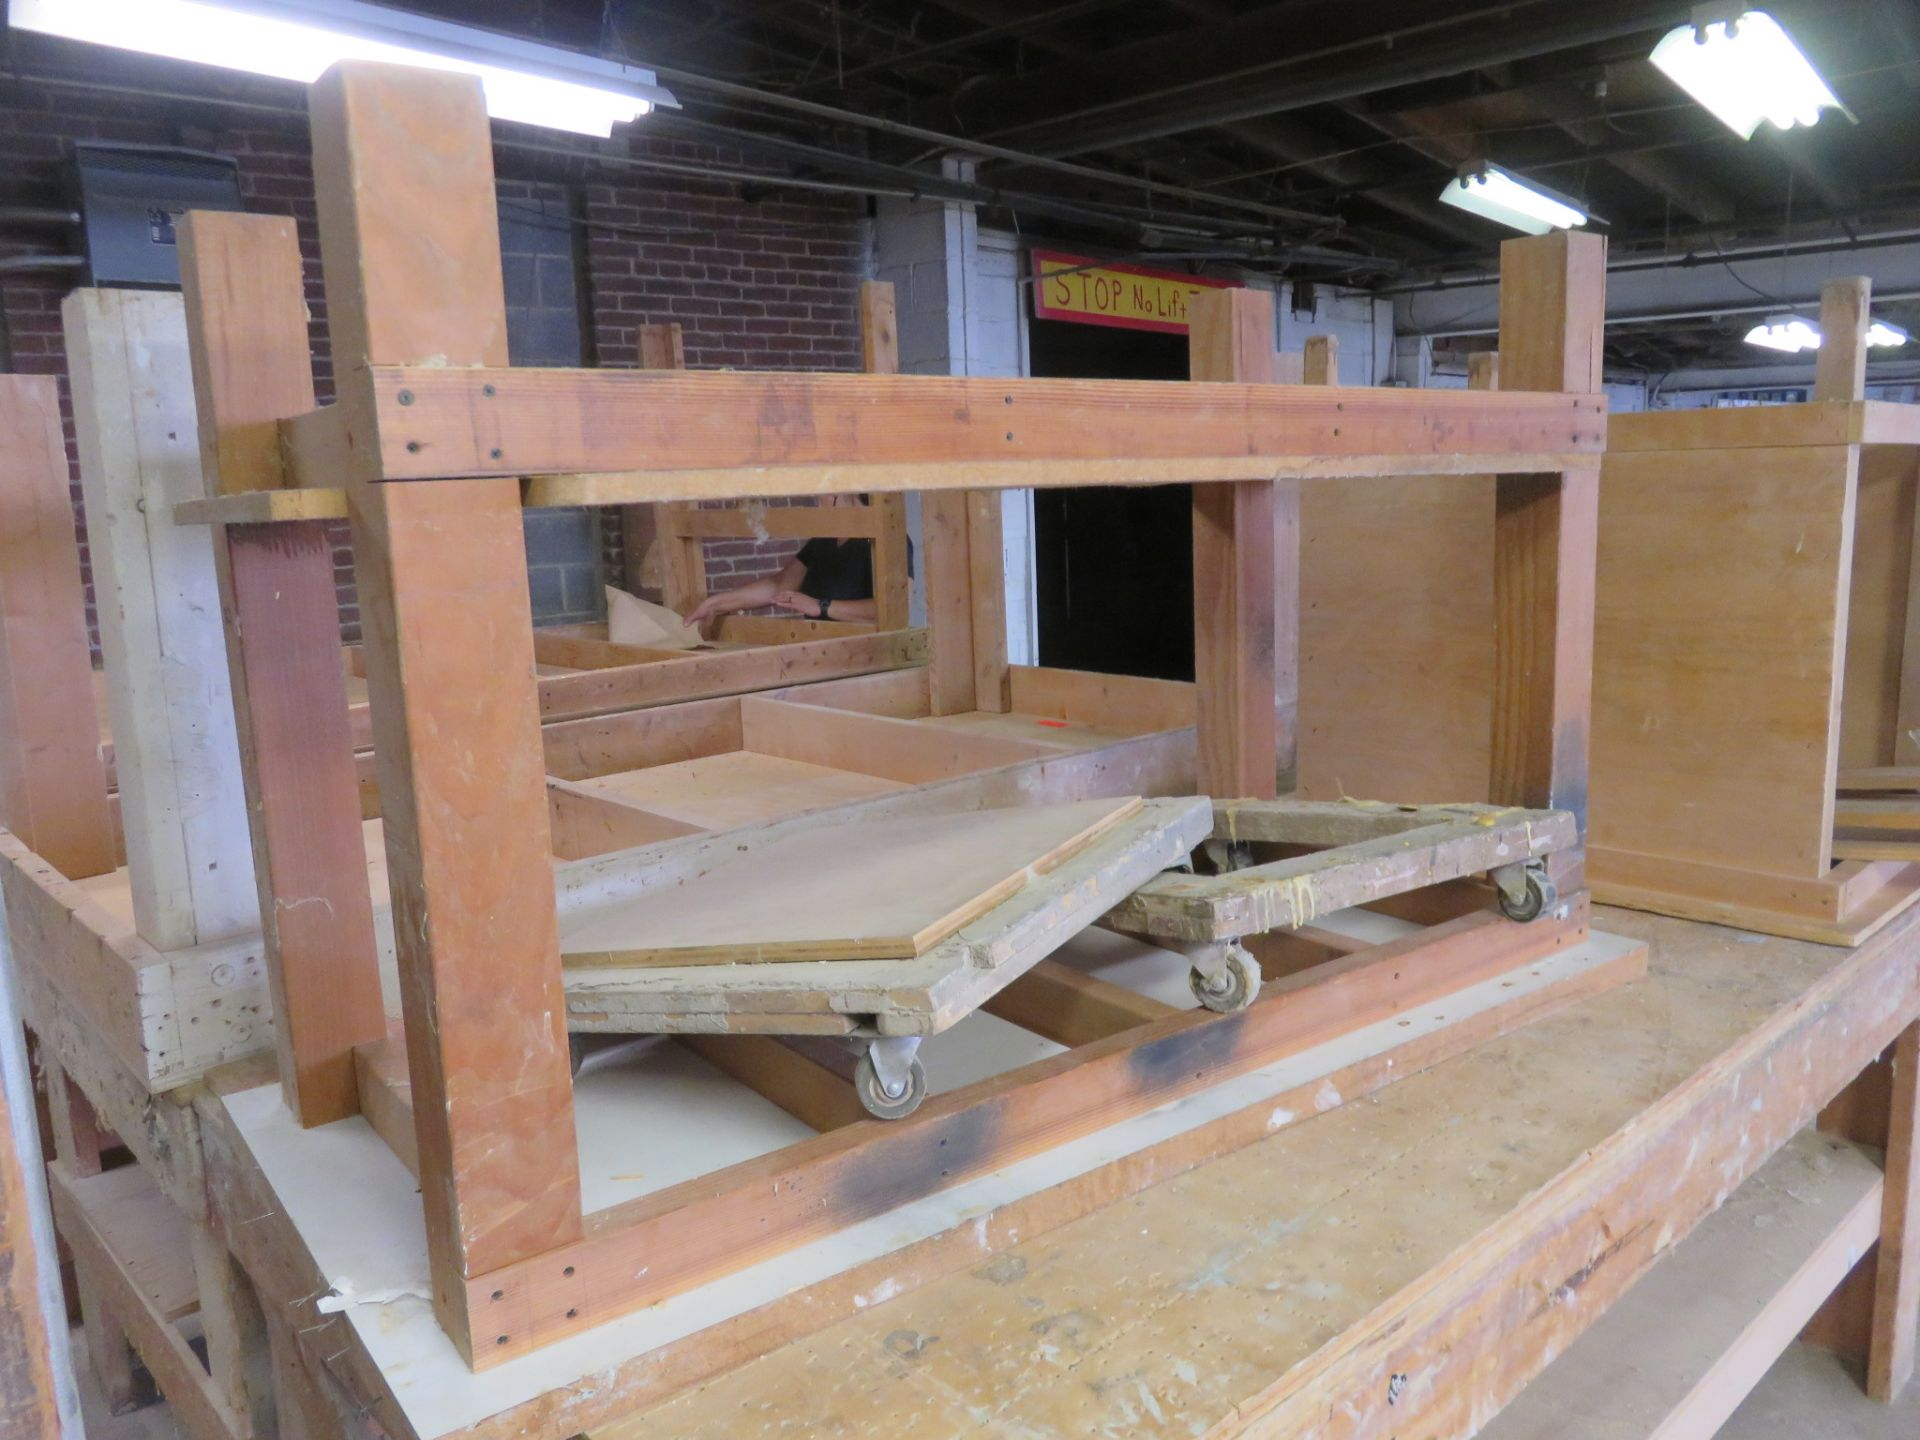 "Heavy Duty Wooden Work Tables Lot of 3 approx 96""x 48""x 36, 38""x 32""x 34"" 60""x 28""x 36"" - Image 2 of 4"